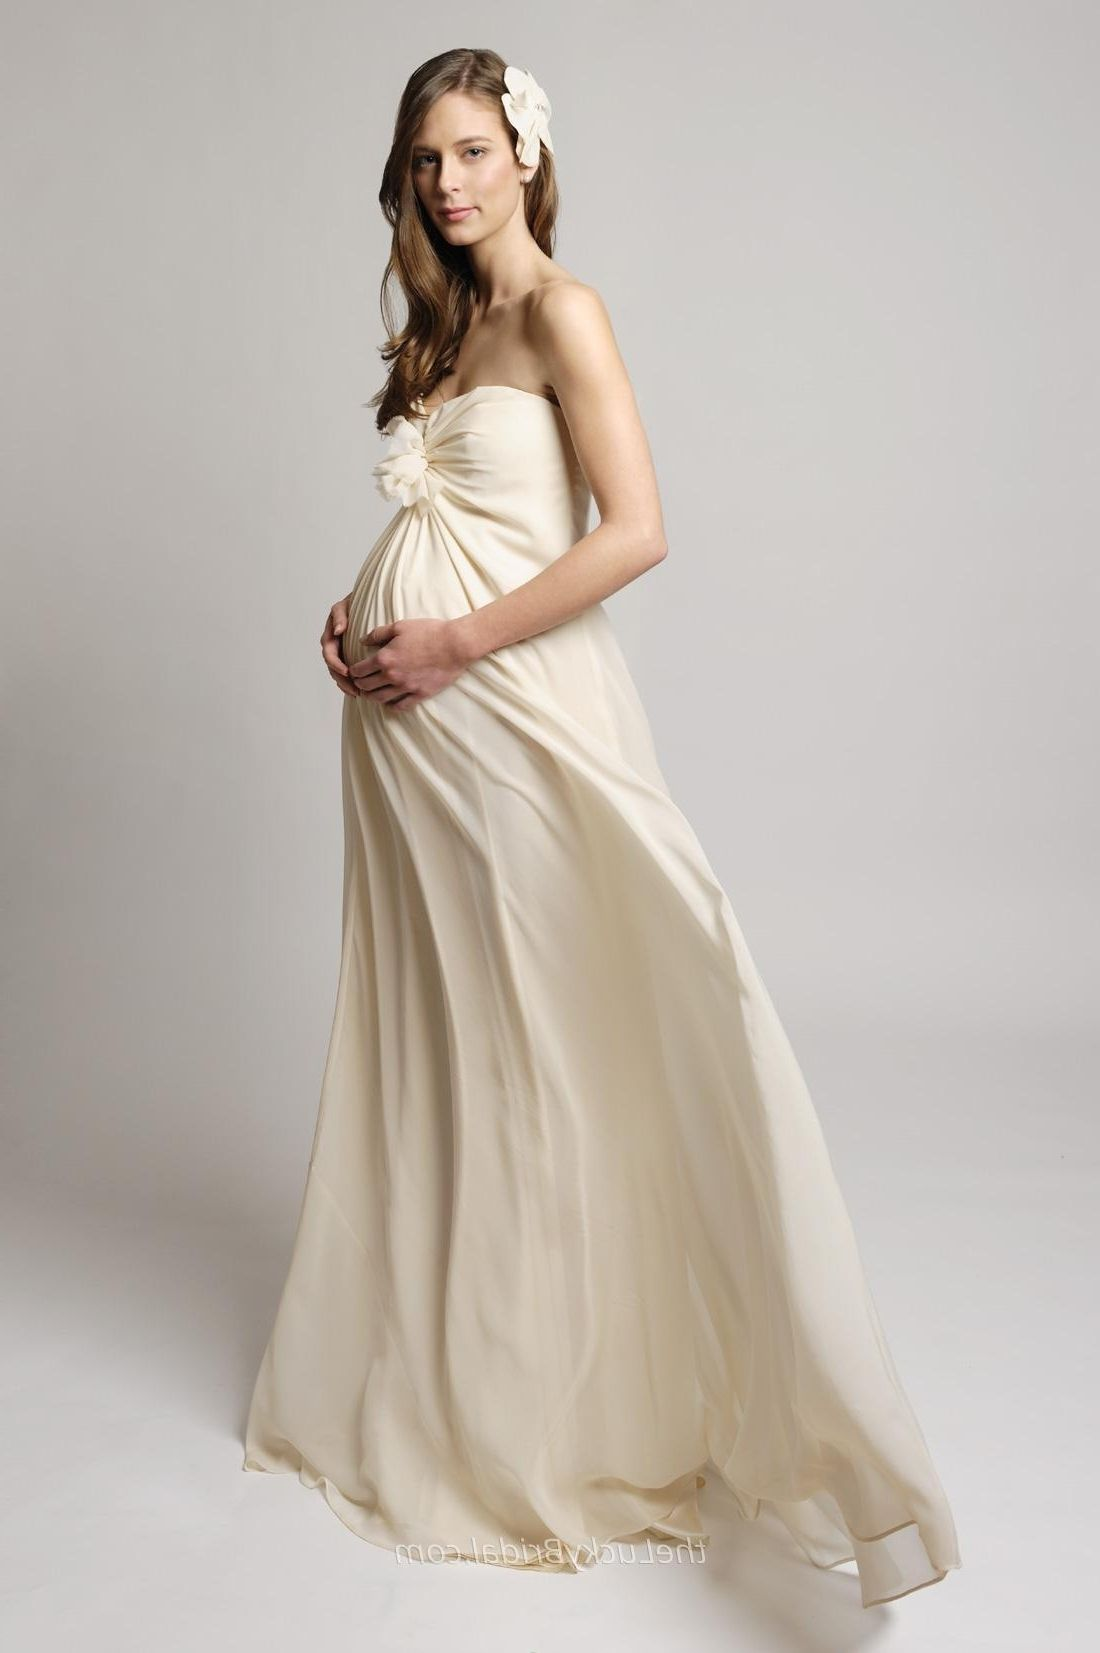 Maternity wedding dresses springfield mo wedding dress maternity wedding dresses springfield mo ombrellifo Image collections